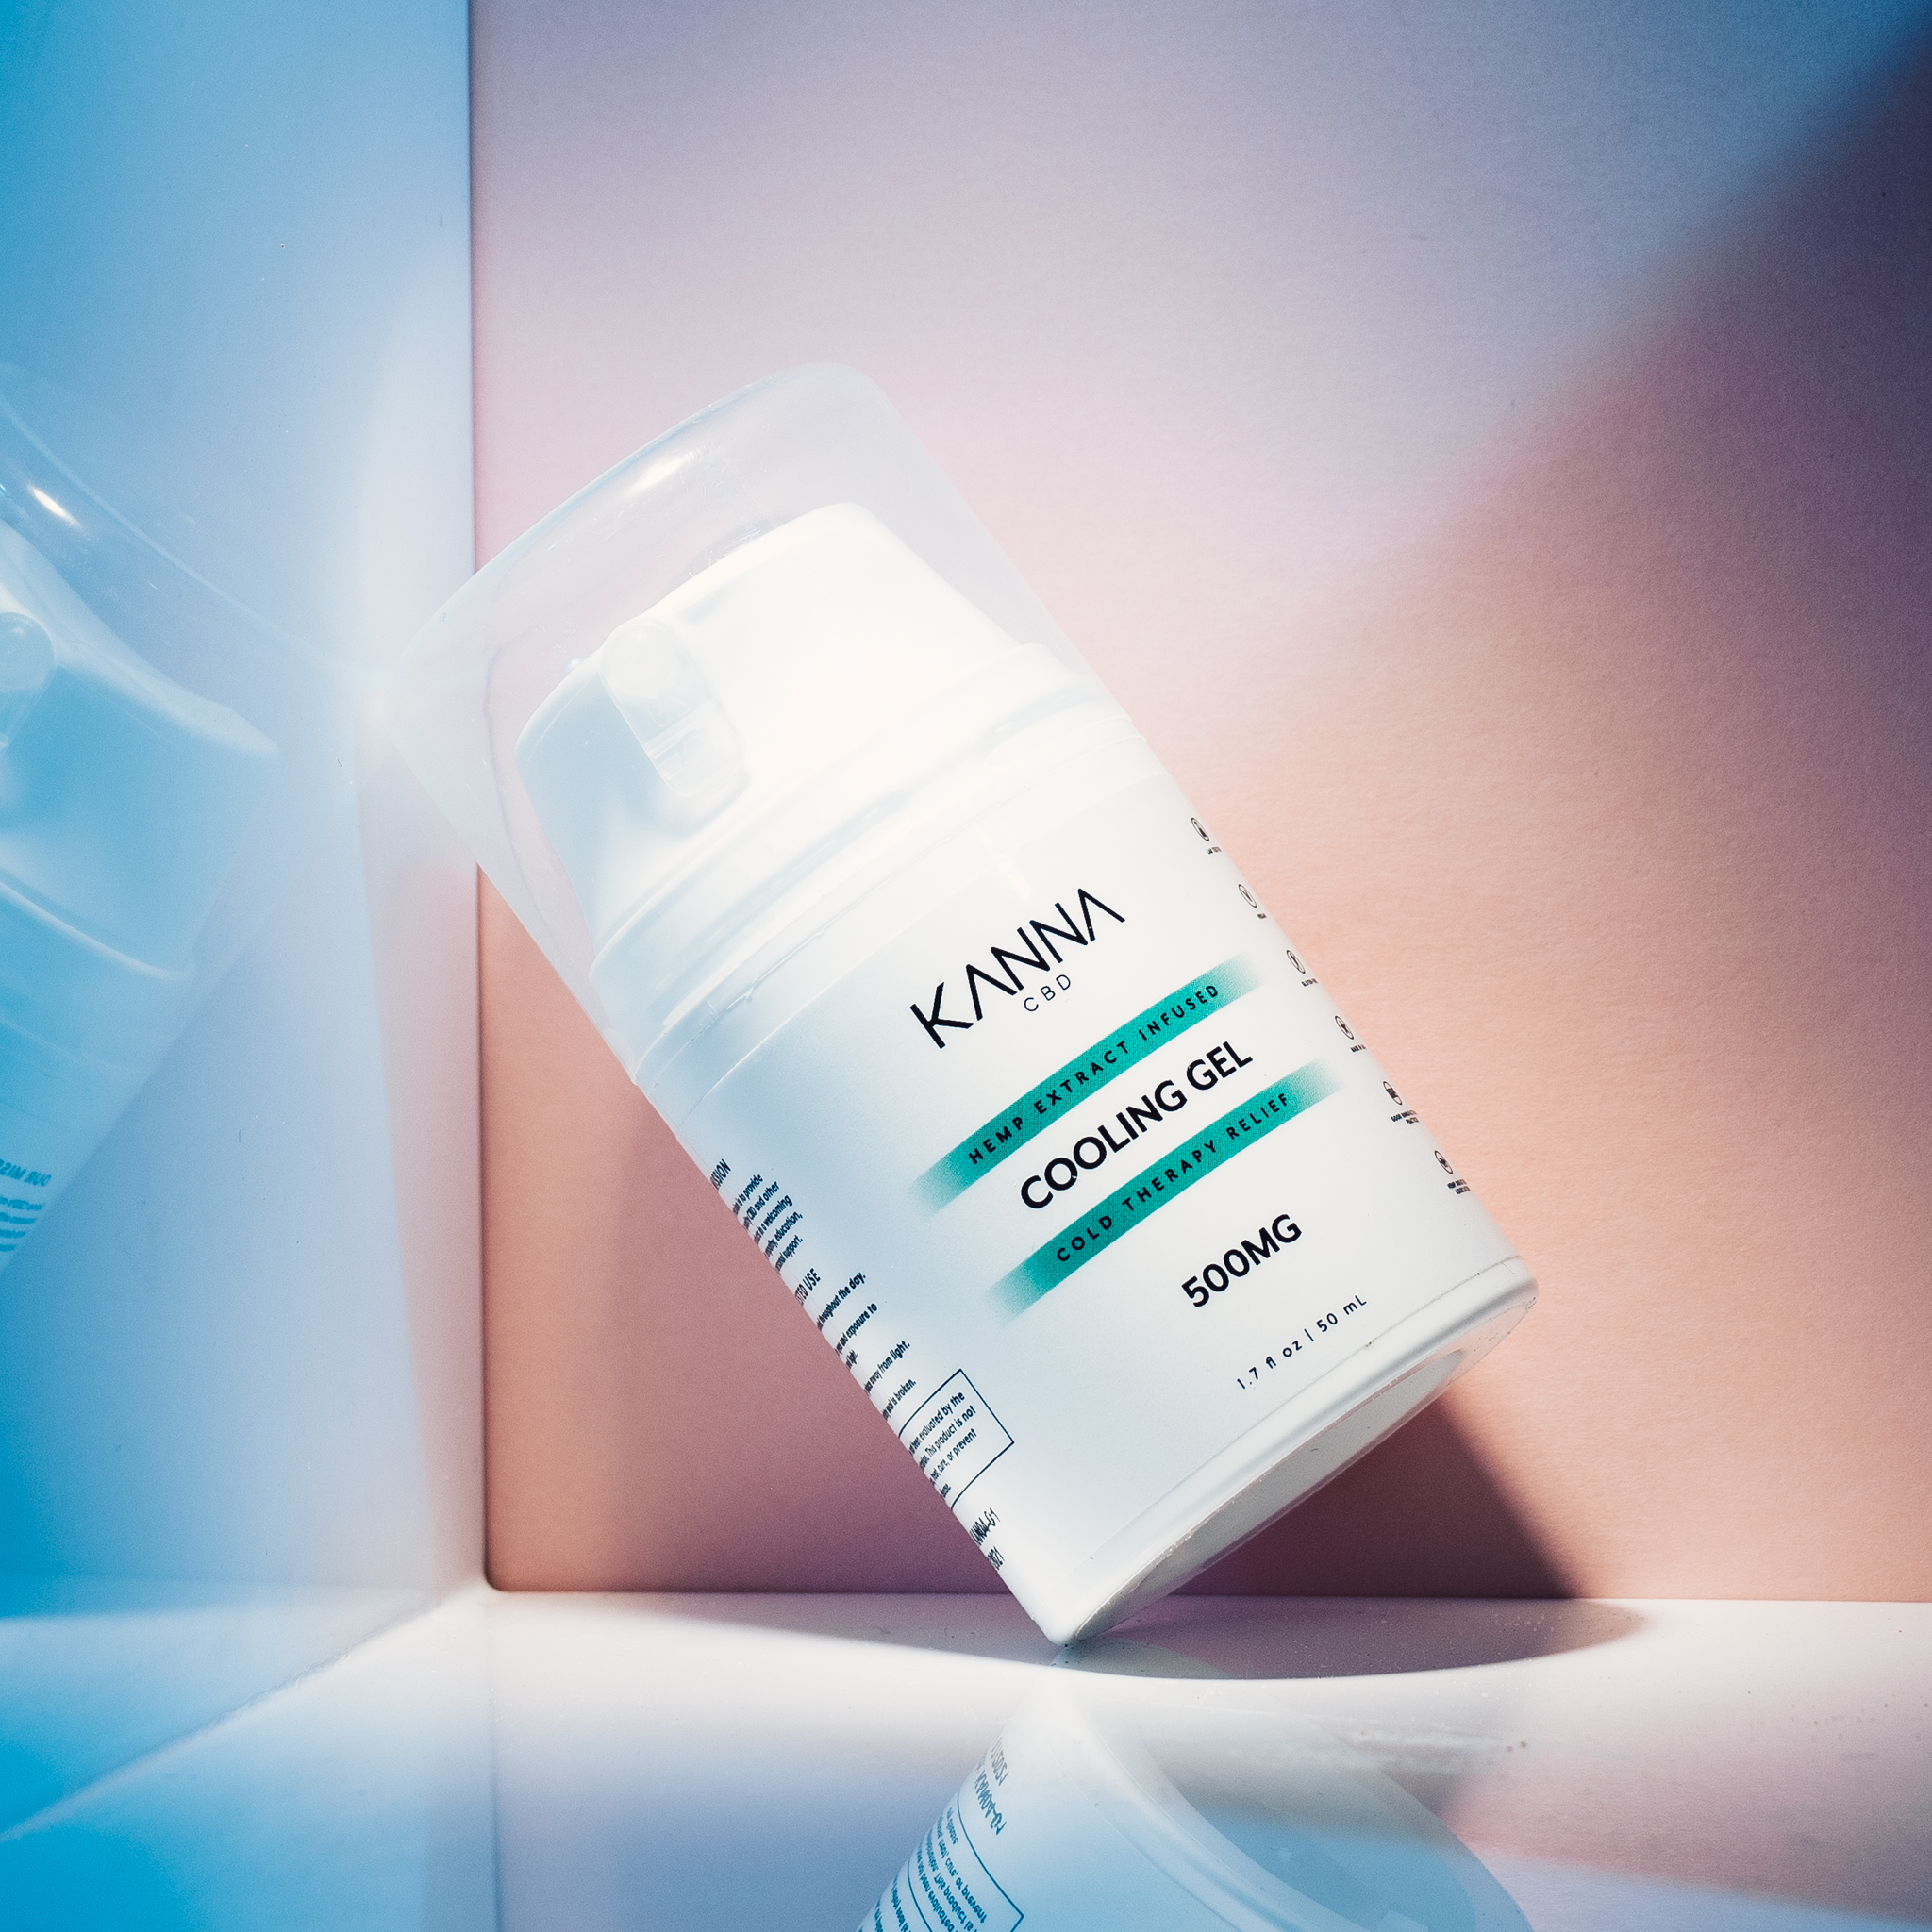 Kanna CBD Product Photography